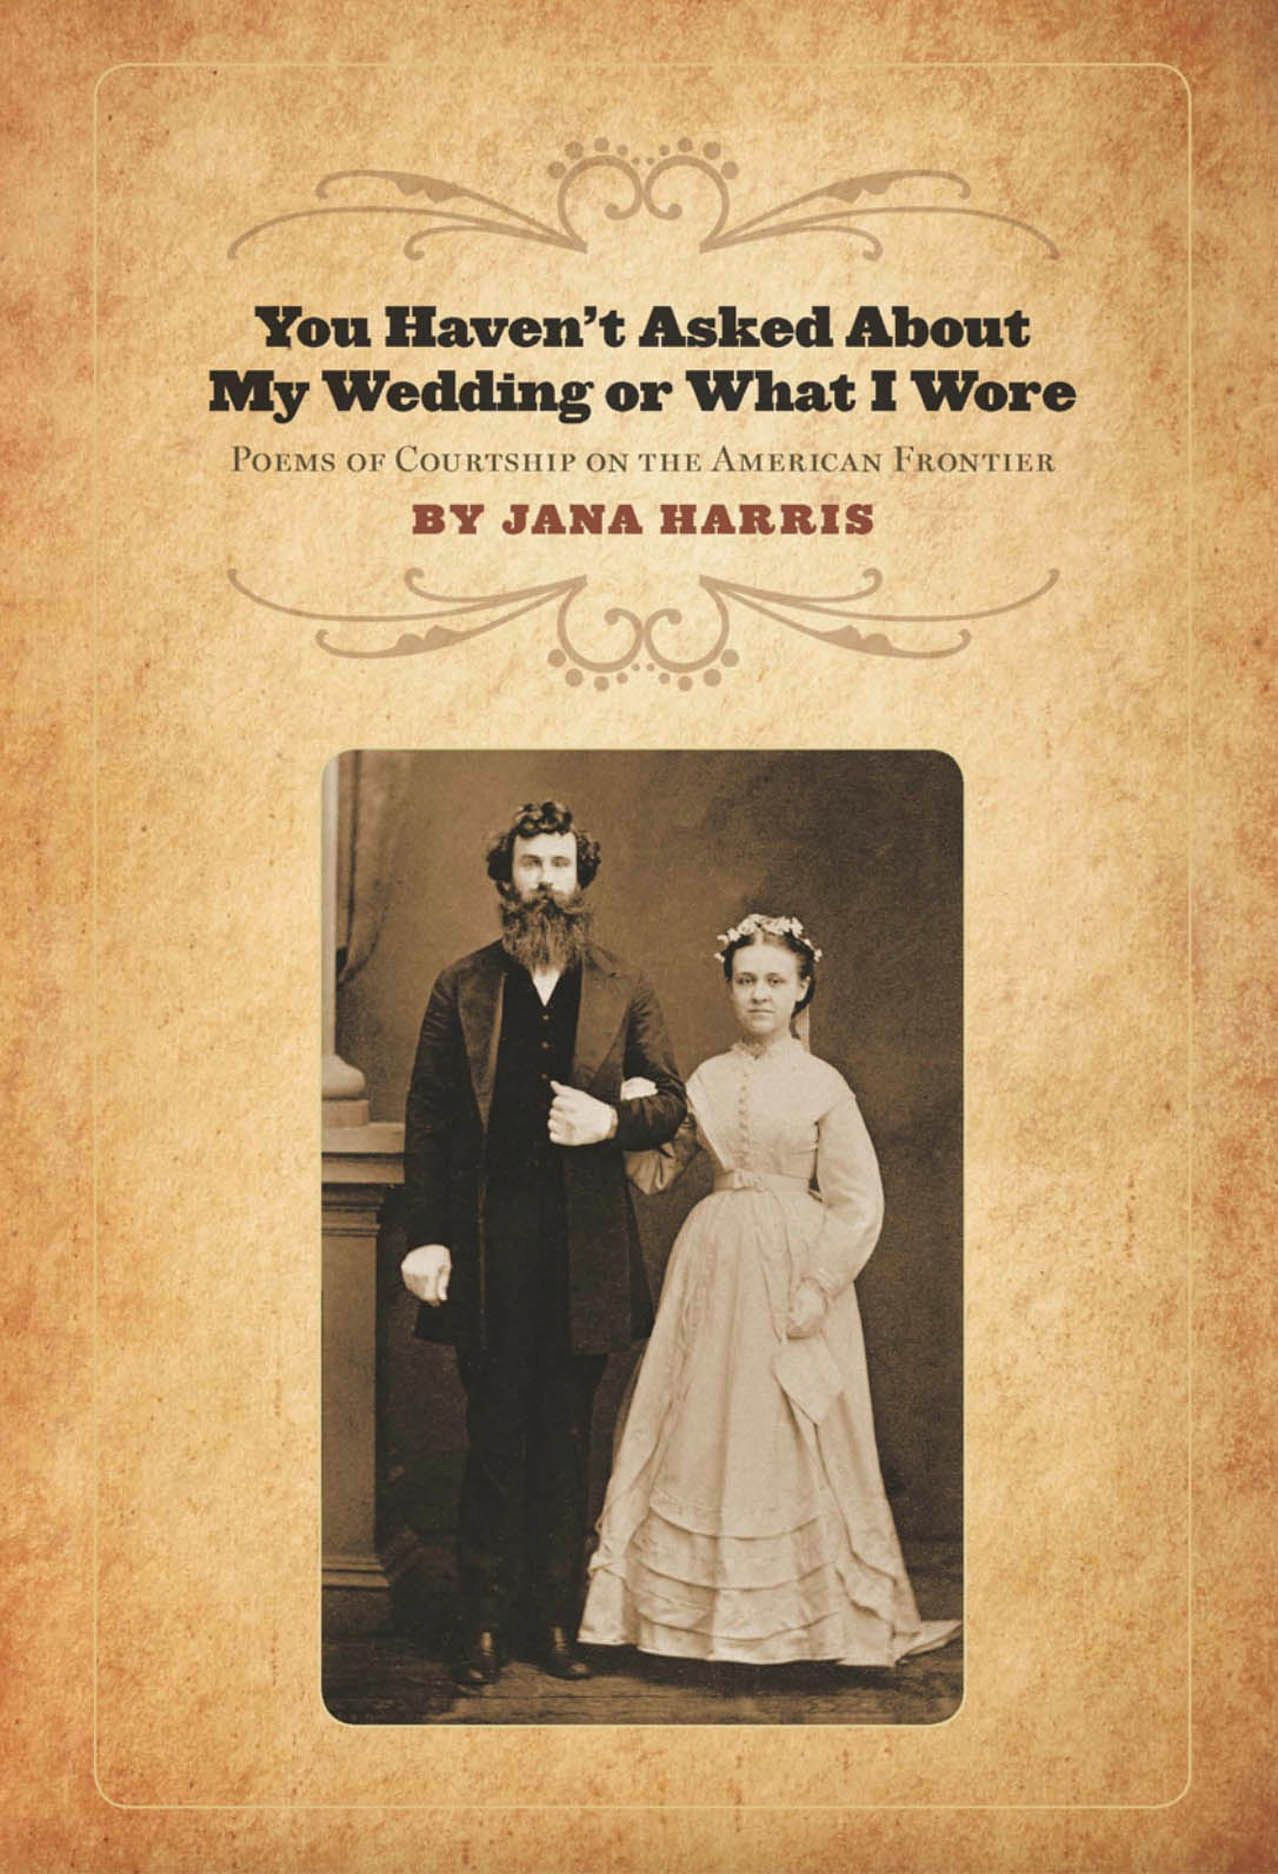 You Haven't Asked About My Wedding or What I Wore: Poems of Courtship on the American Frontier